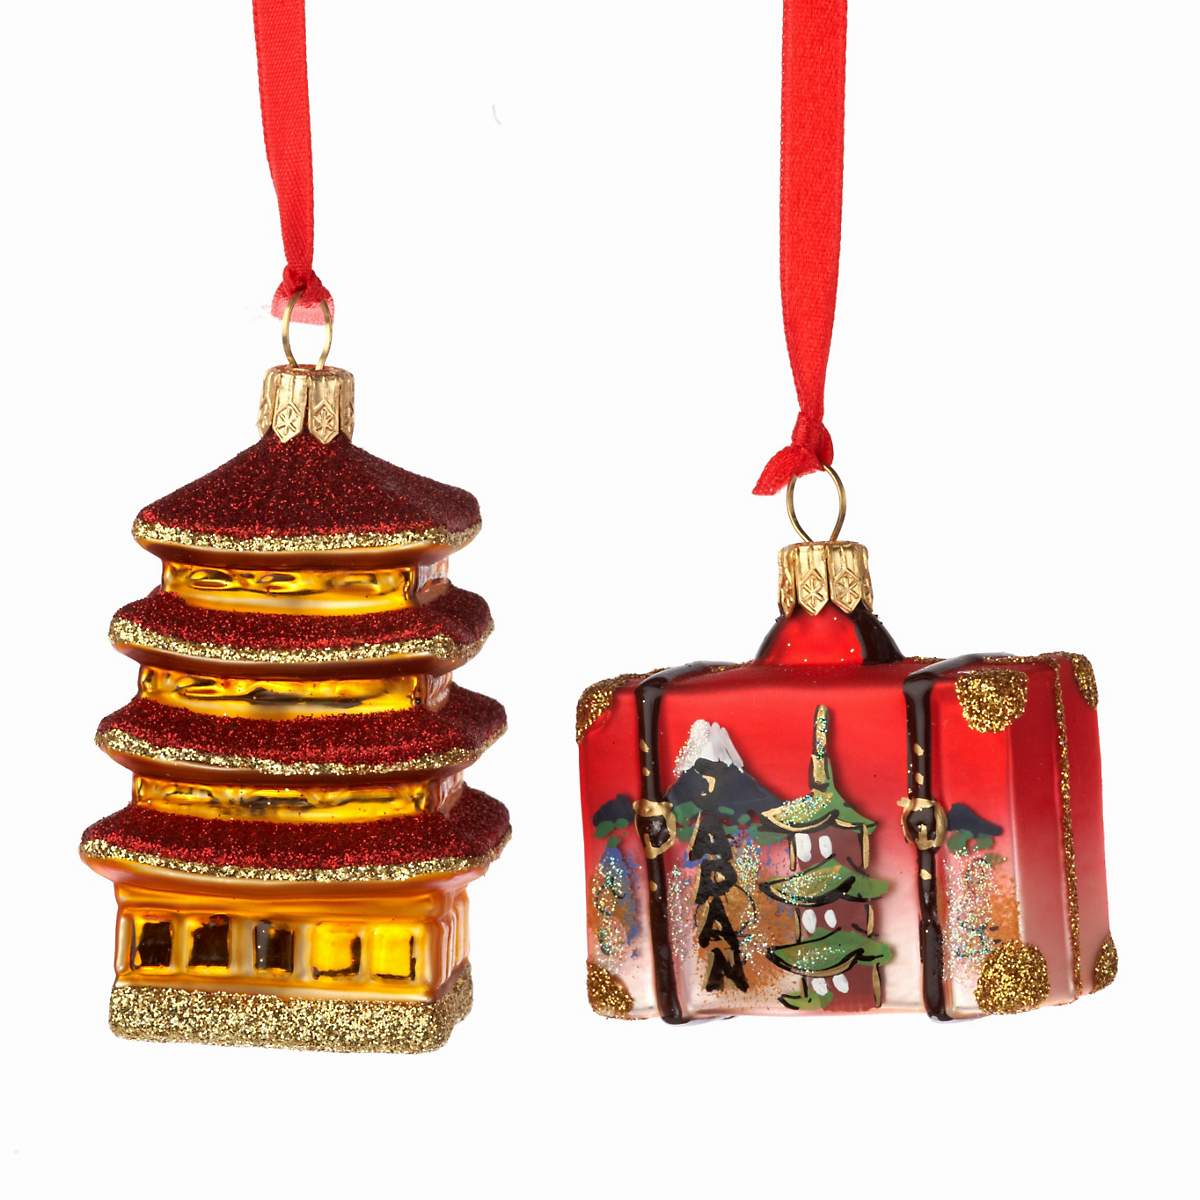 Suitcase & Pagoda Christmas Ornament